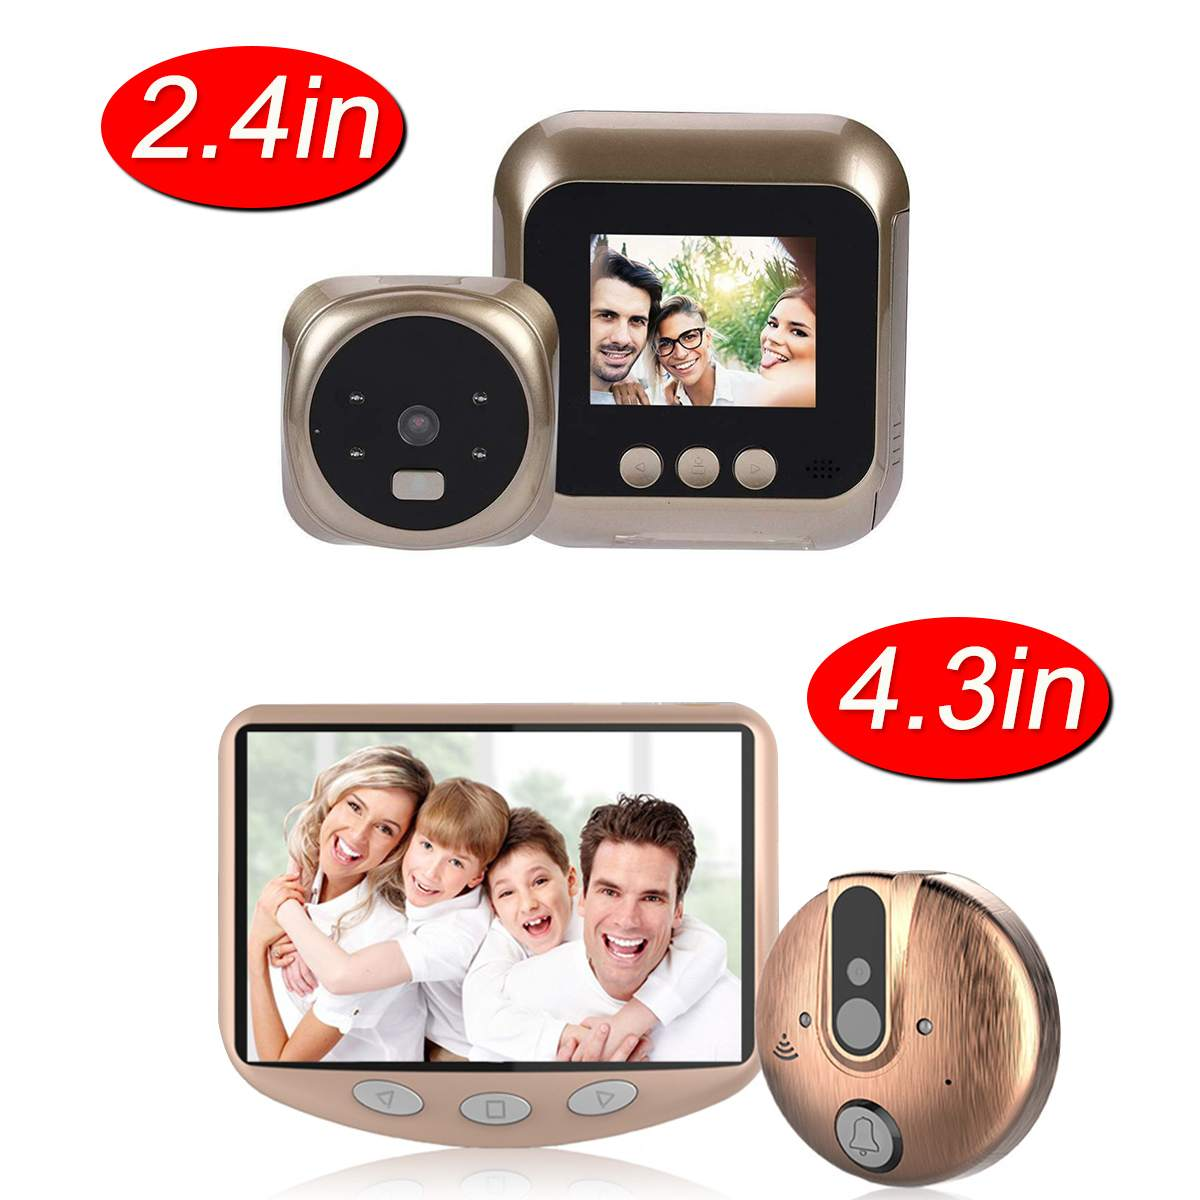 2.4Inch / 4.3Inch Peephole Door Camera LCD Display Screen With Electronic Doorbell LED Lights Video Door Viewer Home Security2.4Inch / 4.3Inch Peephole Door Camera LCD Display Screen With Electronic Doorbell LED Lights Video Door Viewer Home Security